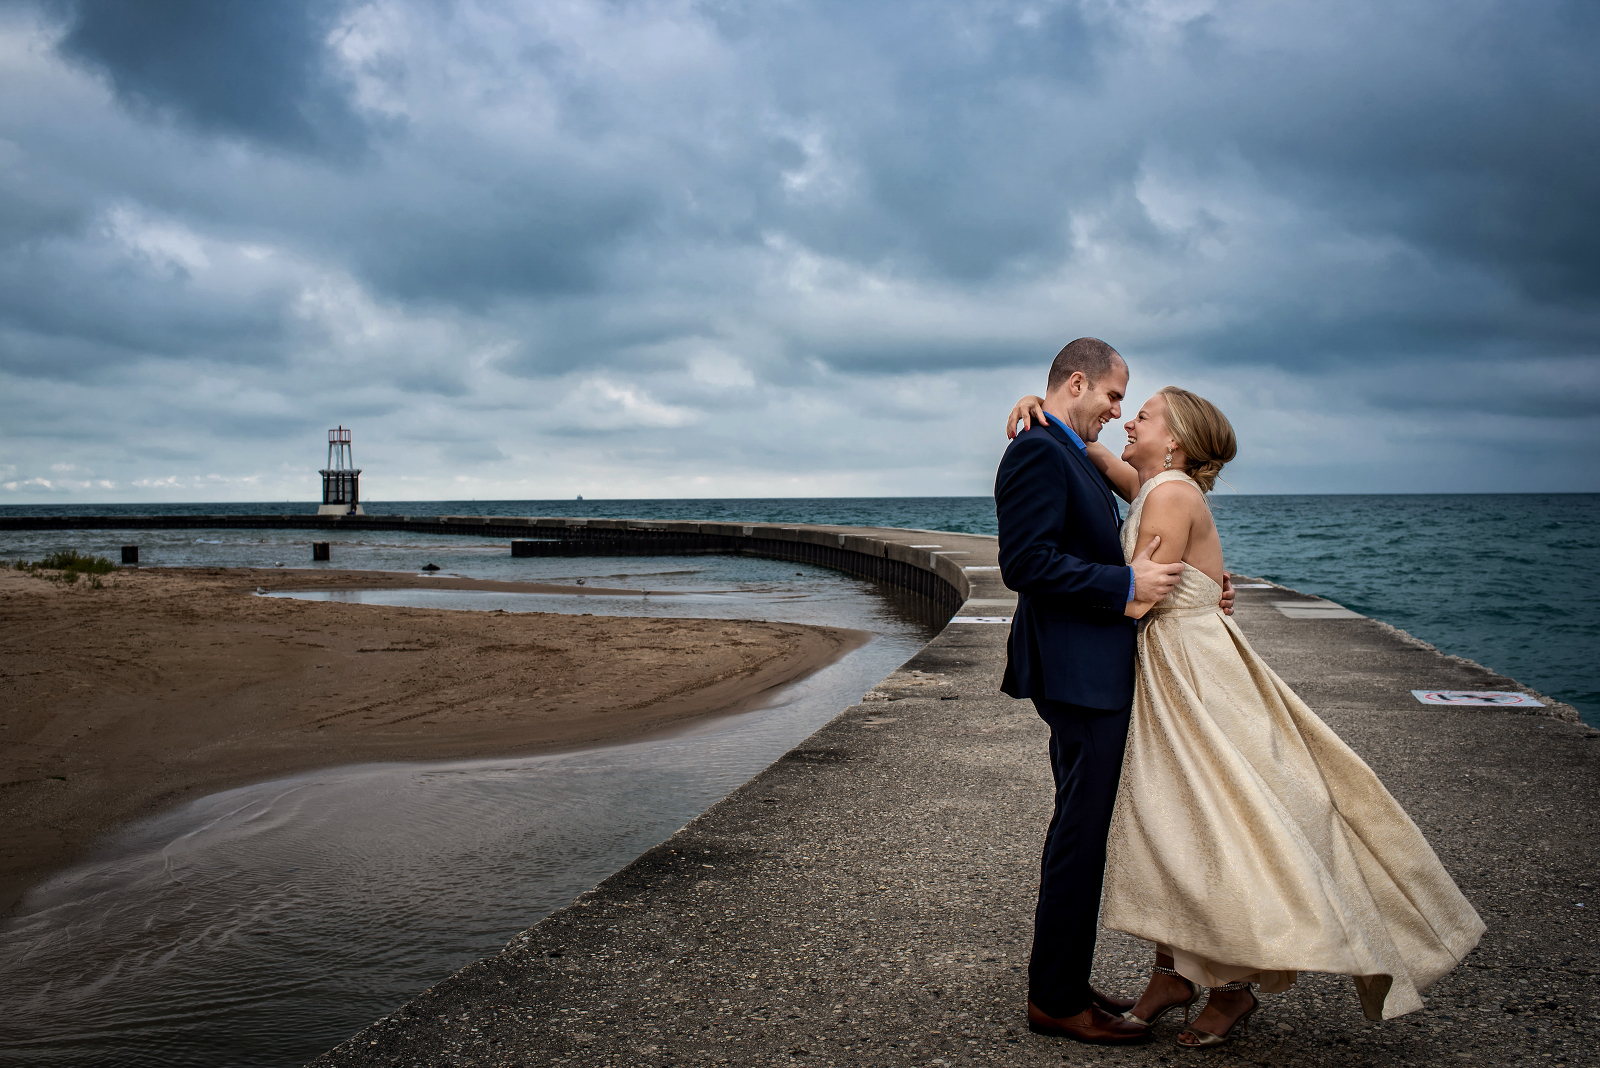 bride and groom gazing into each other's eyes by Lake Michigan. Photographed by Candice Cusic